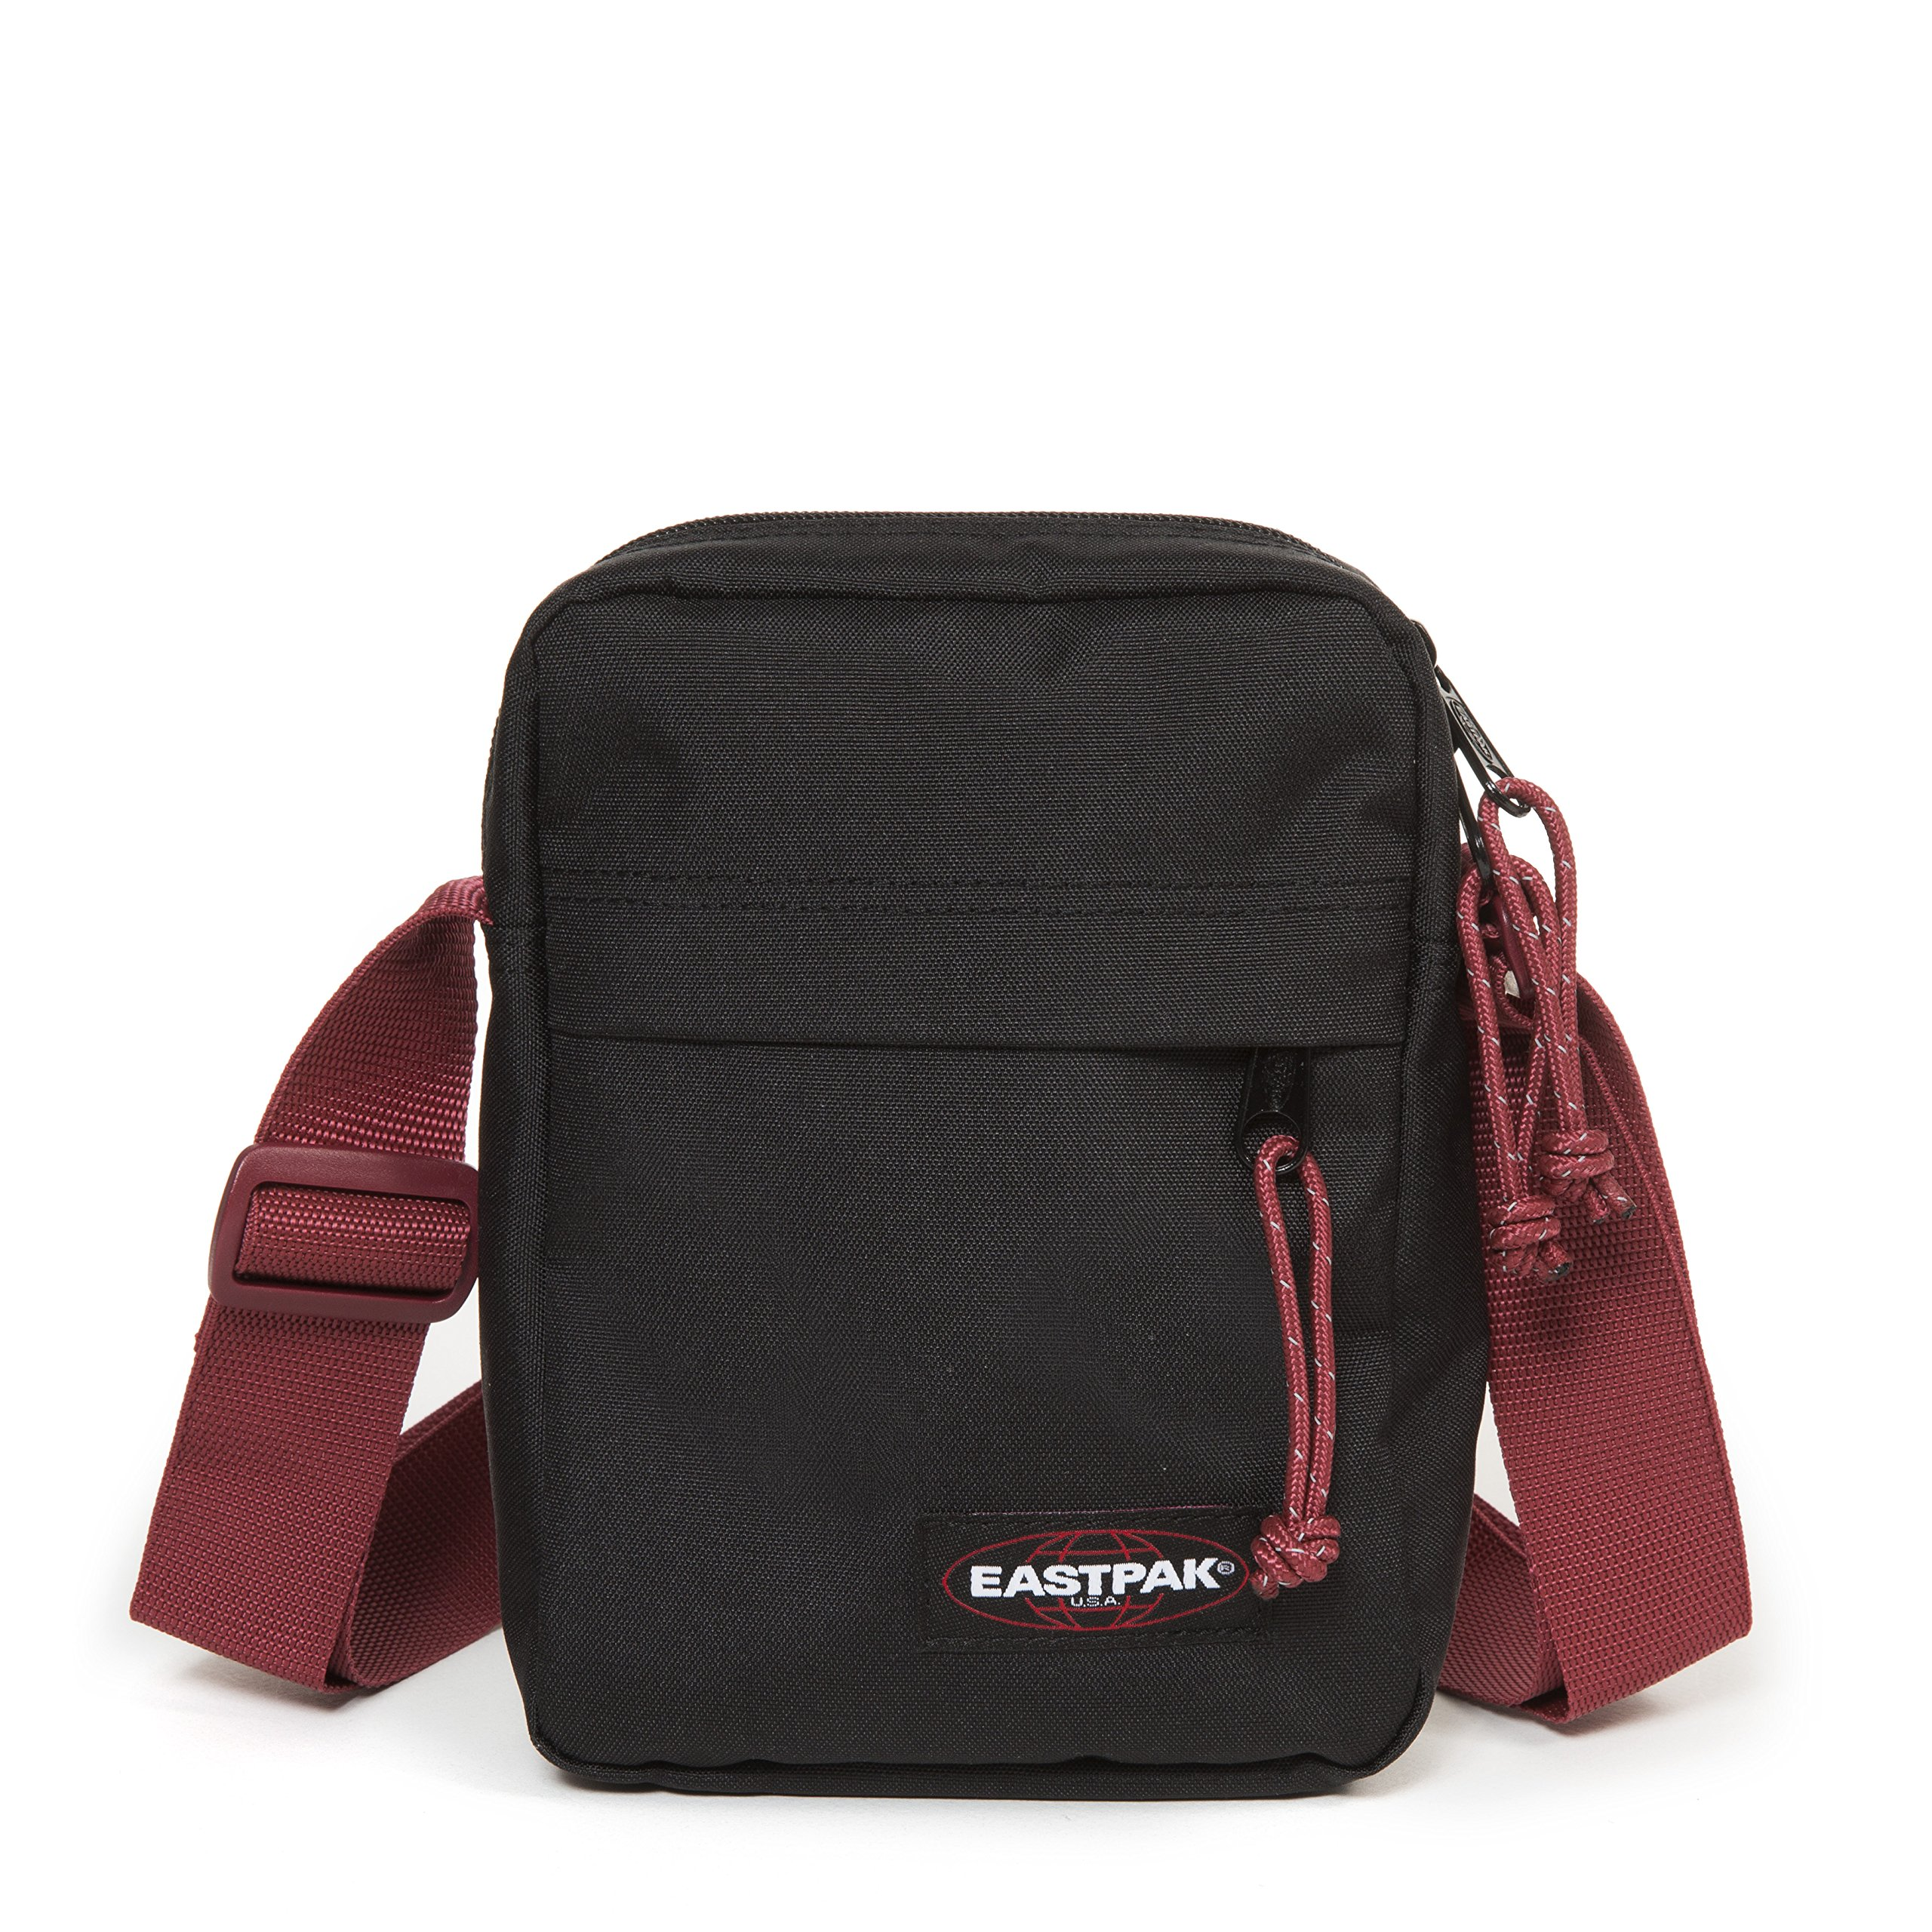 EASTPAK THE ONE SHOULDER BAG (BLACK/RED)